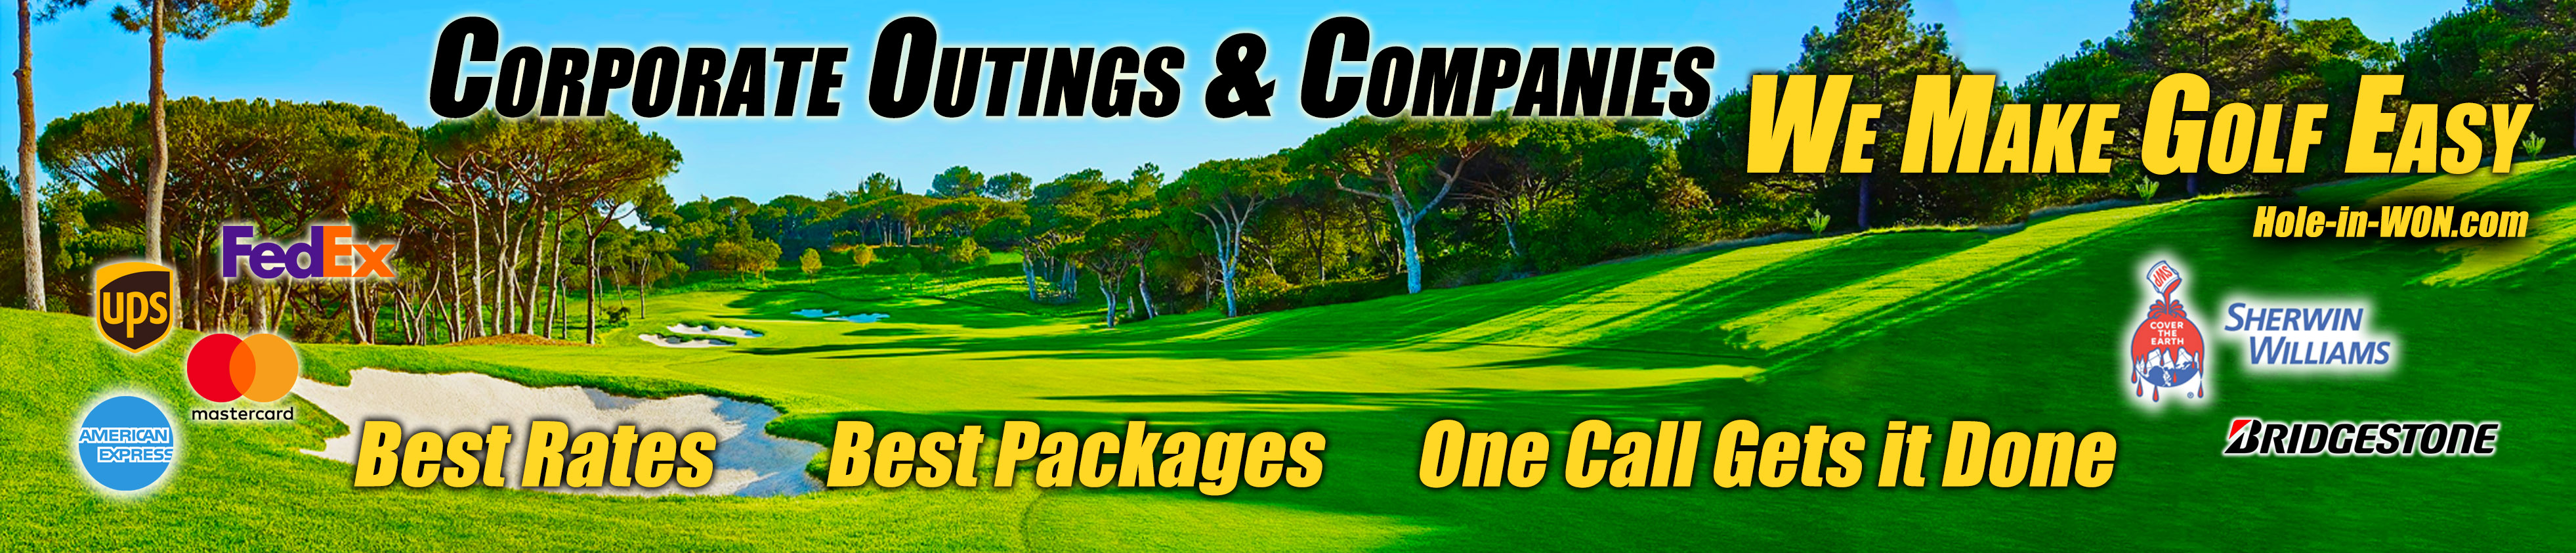 Corporate and Organizations Golf Tournament Golf Insurance Hole-in-WON.com